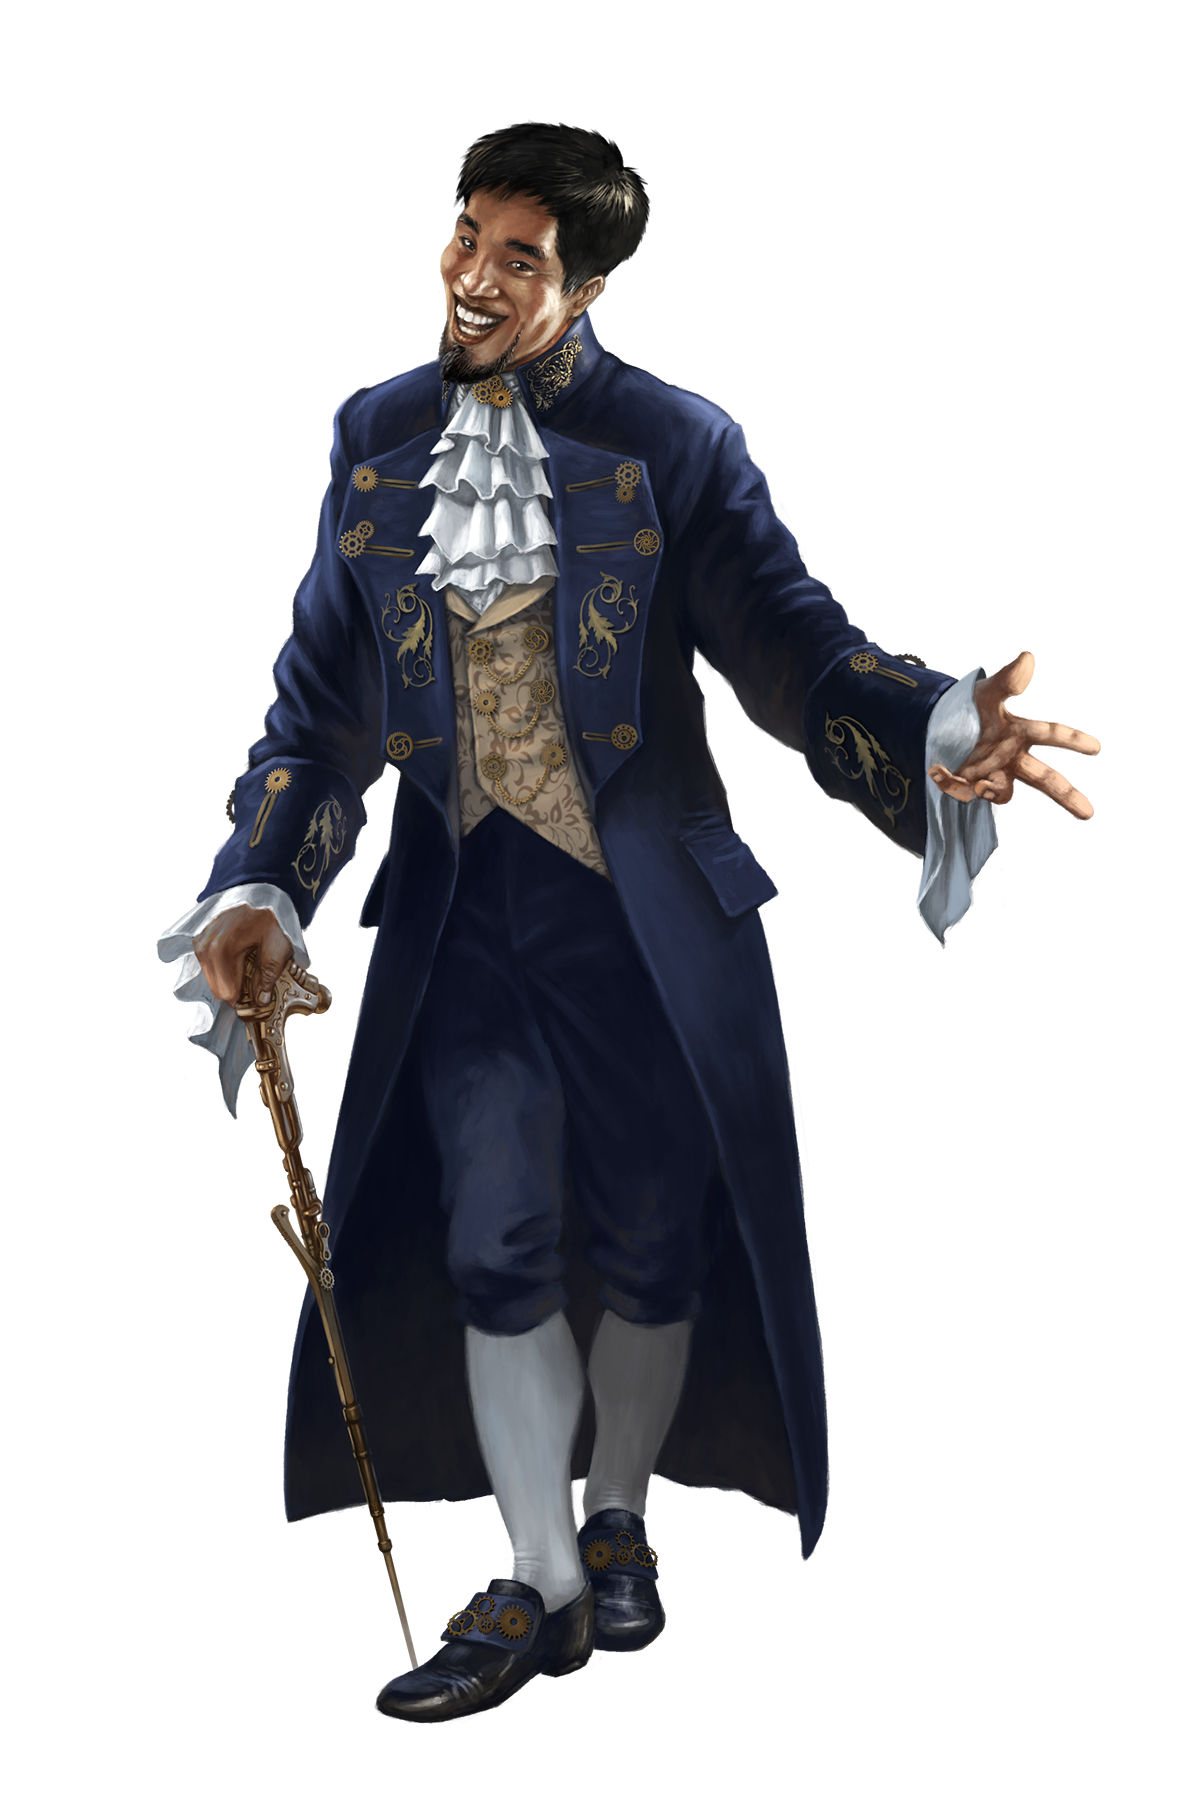 Sihn Siphandon, inventor and proprietor of the Grand Bazaar's Clockwork Caravan. Art by Loïc Canavaggia.